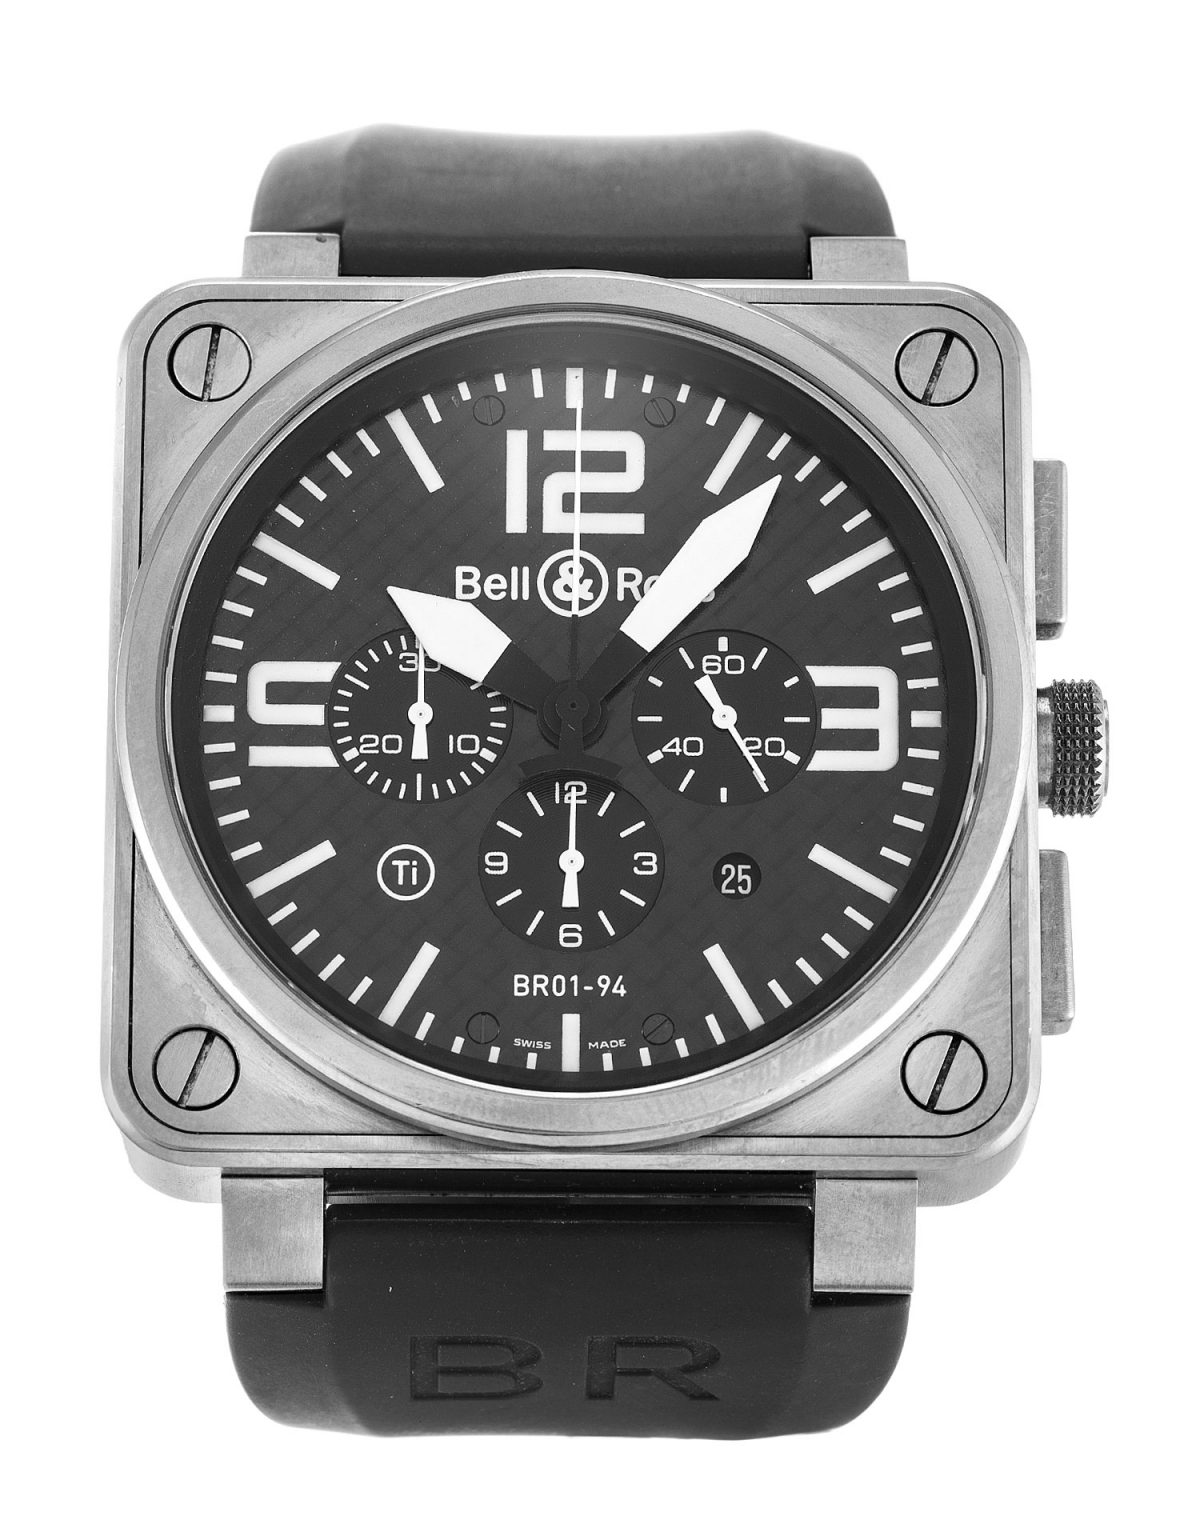 The most popular Bell & Ross vintage model-One of the Best Replica Watches